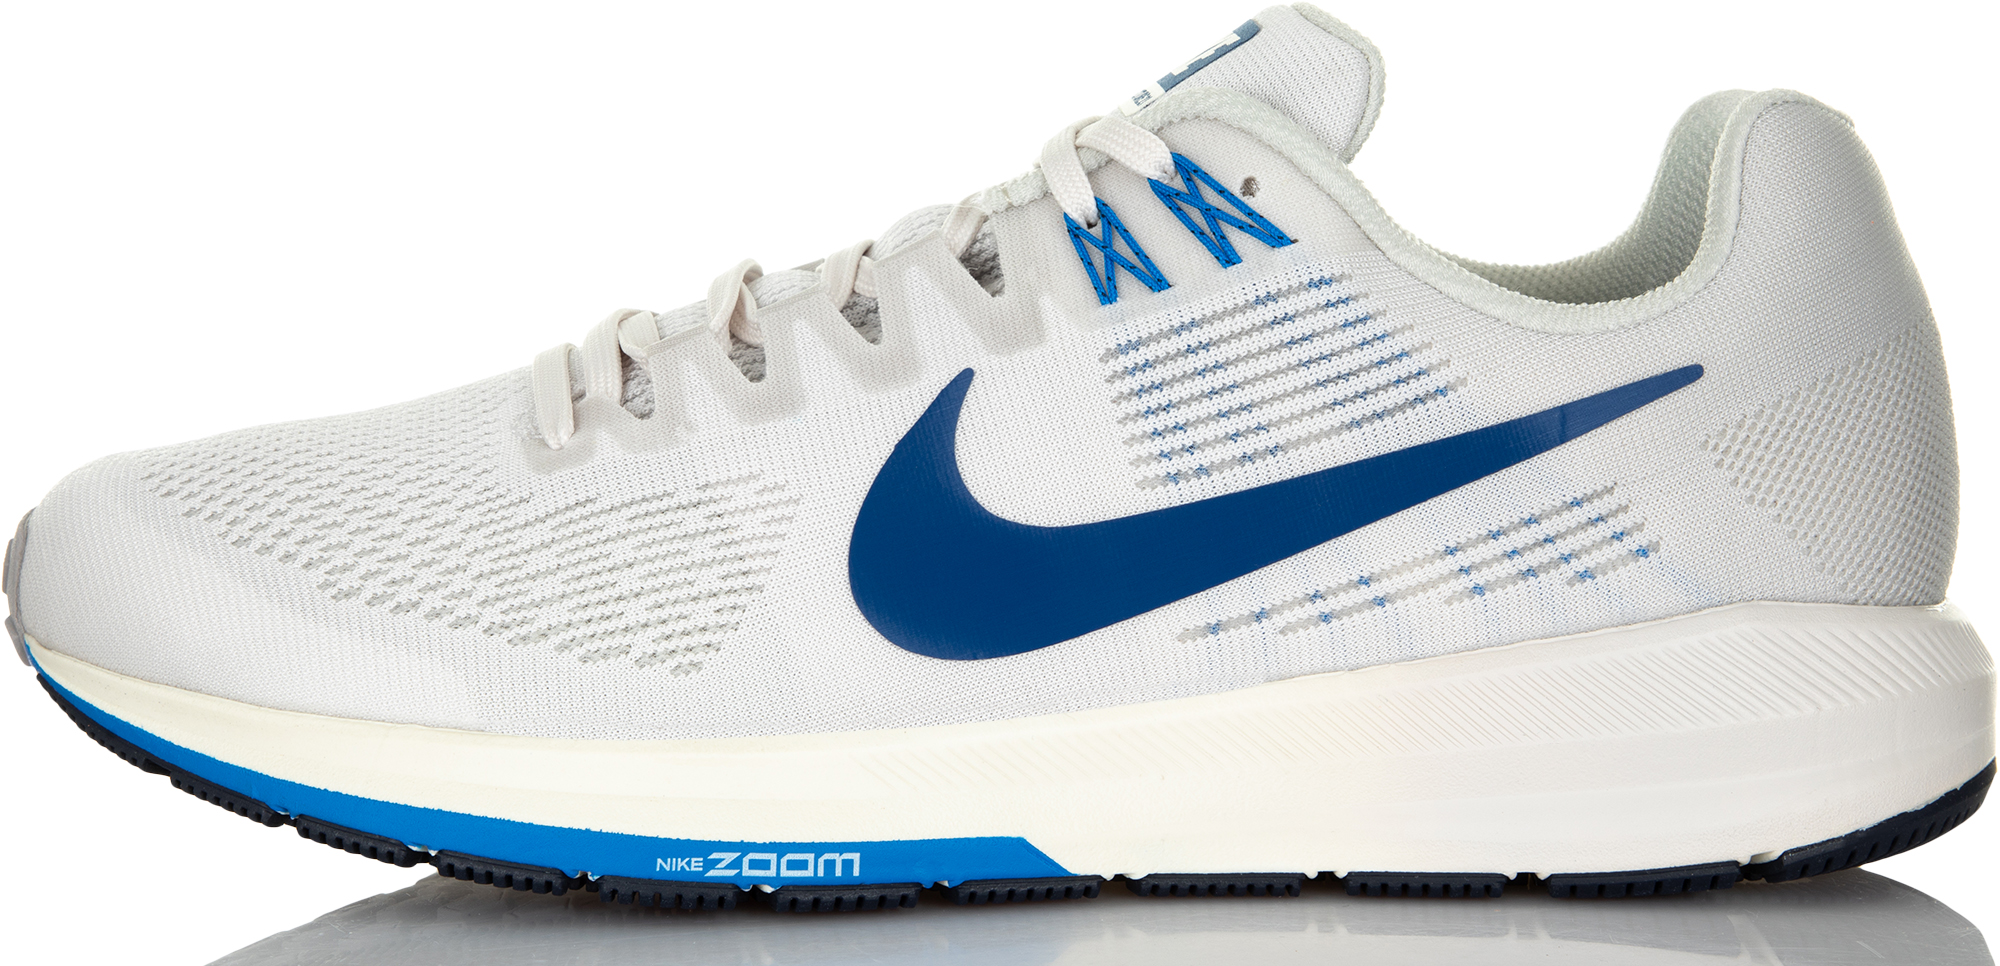 Nike Кроссовки мужские Nike Air Zoom Structure 21, размер 45